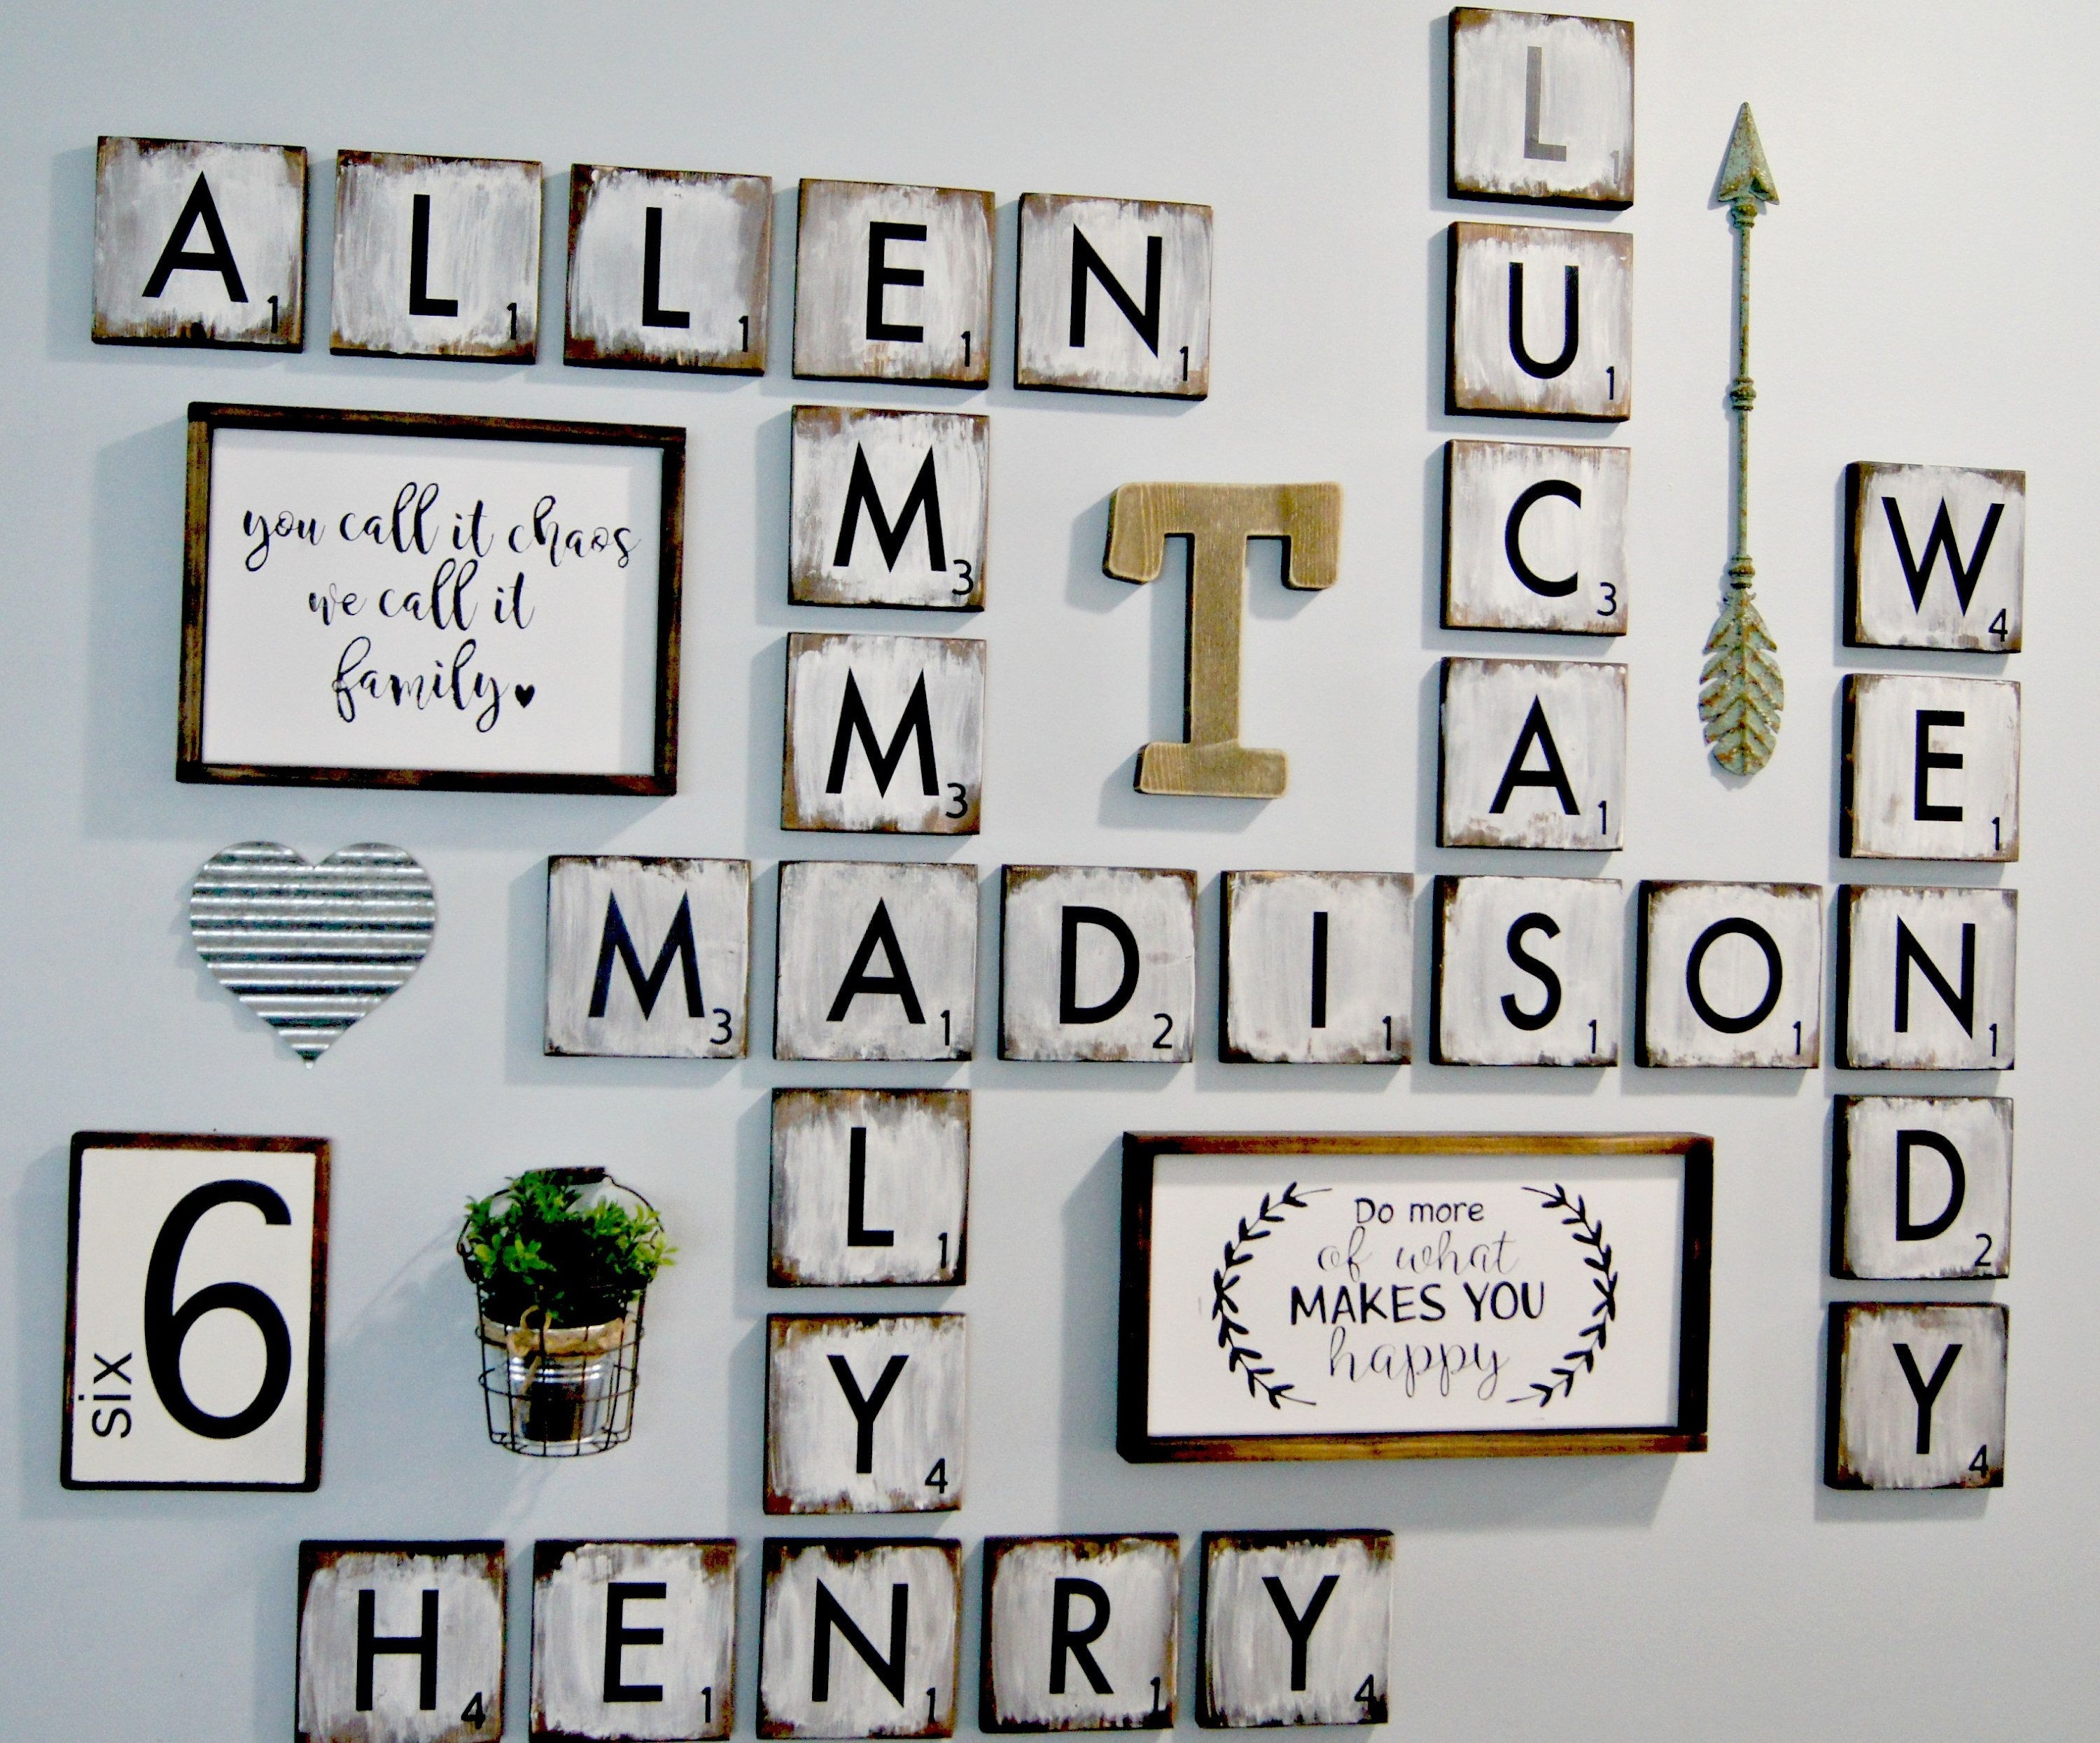 Scrabble Letters Wall Decor Diy Pinterest Design Of Family Scrabble Intended For Current Scrabble Wall Art (Gallery 12 of 20)